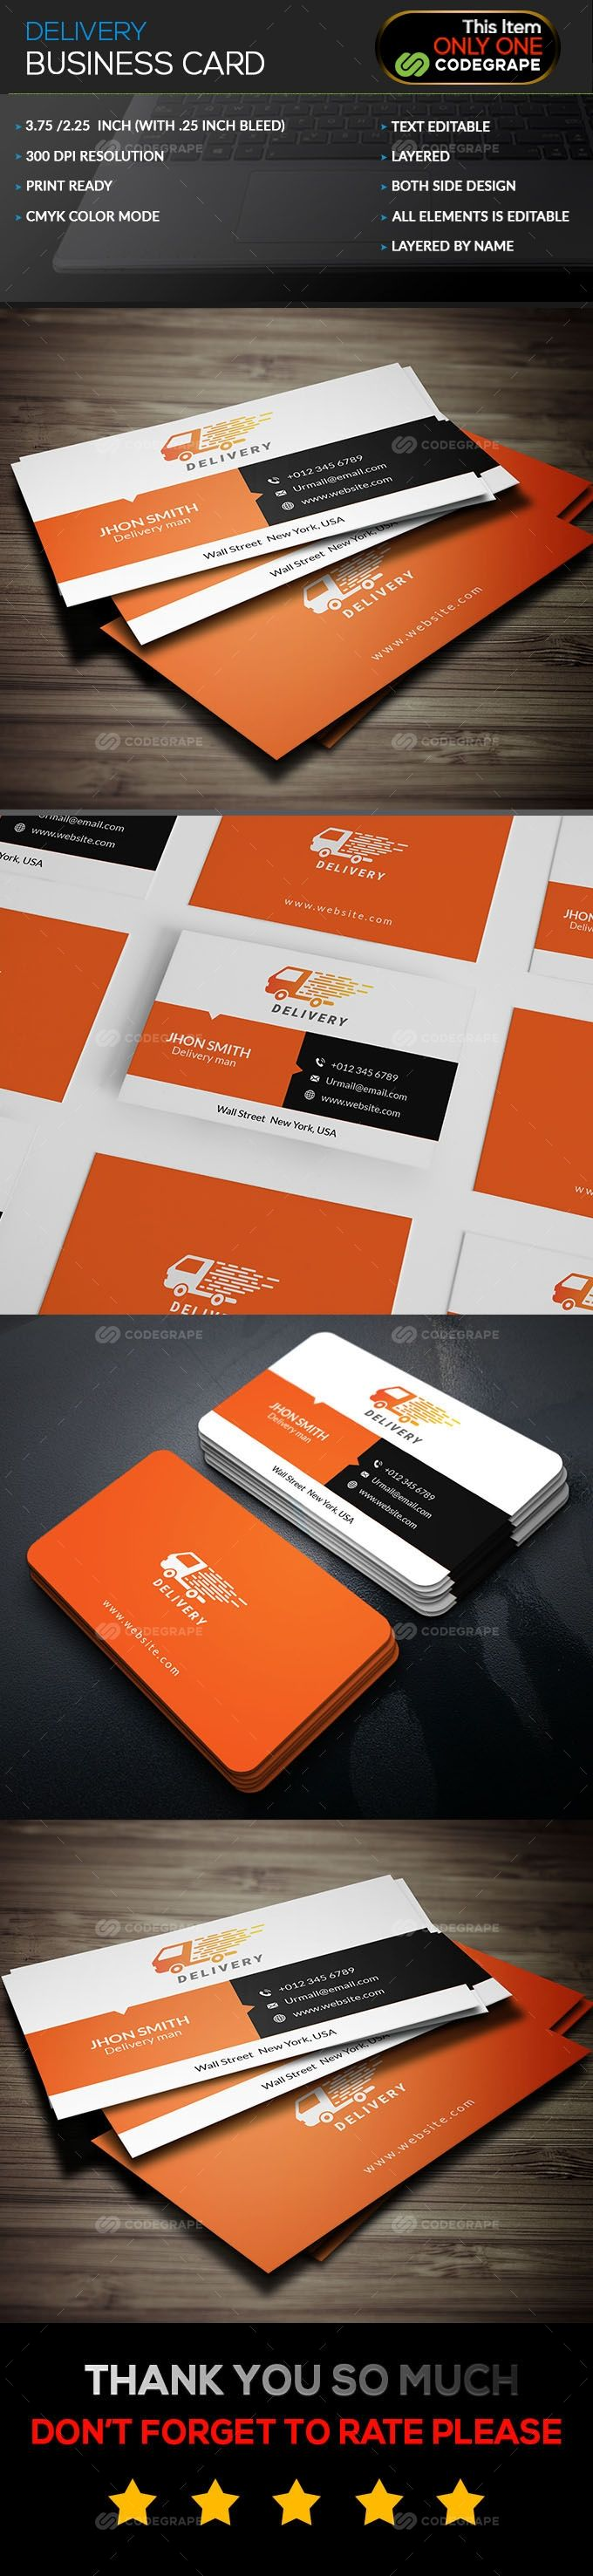 Delivery Business Card Business Cards Corporate Business Card Cards